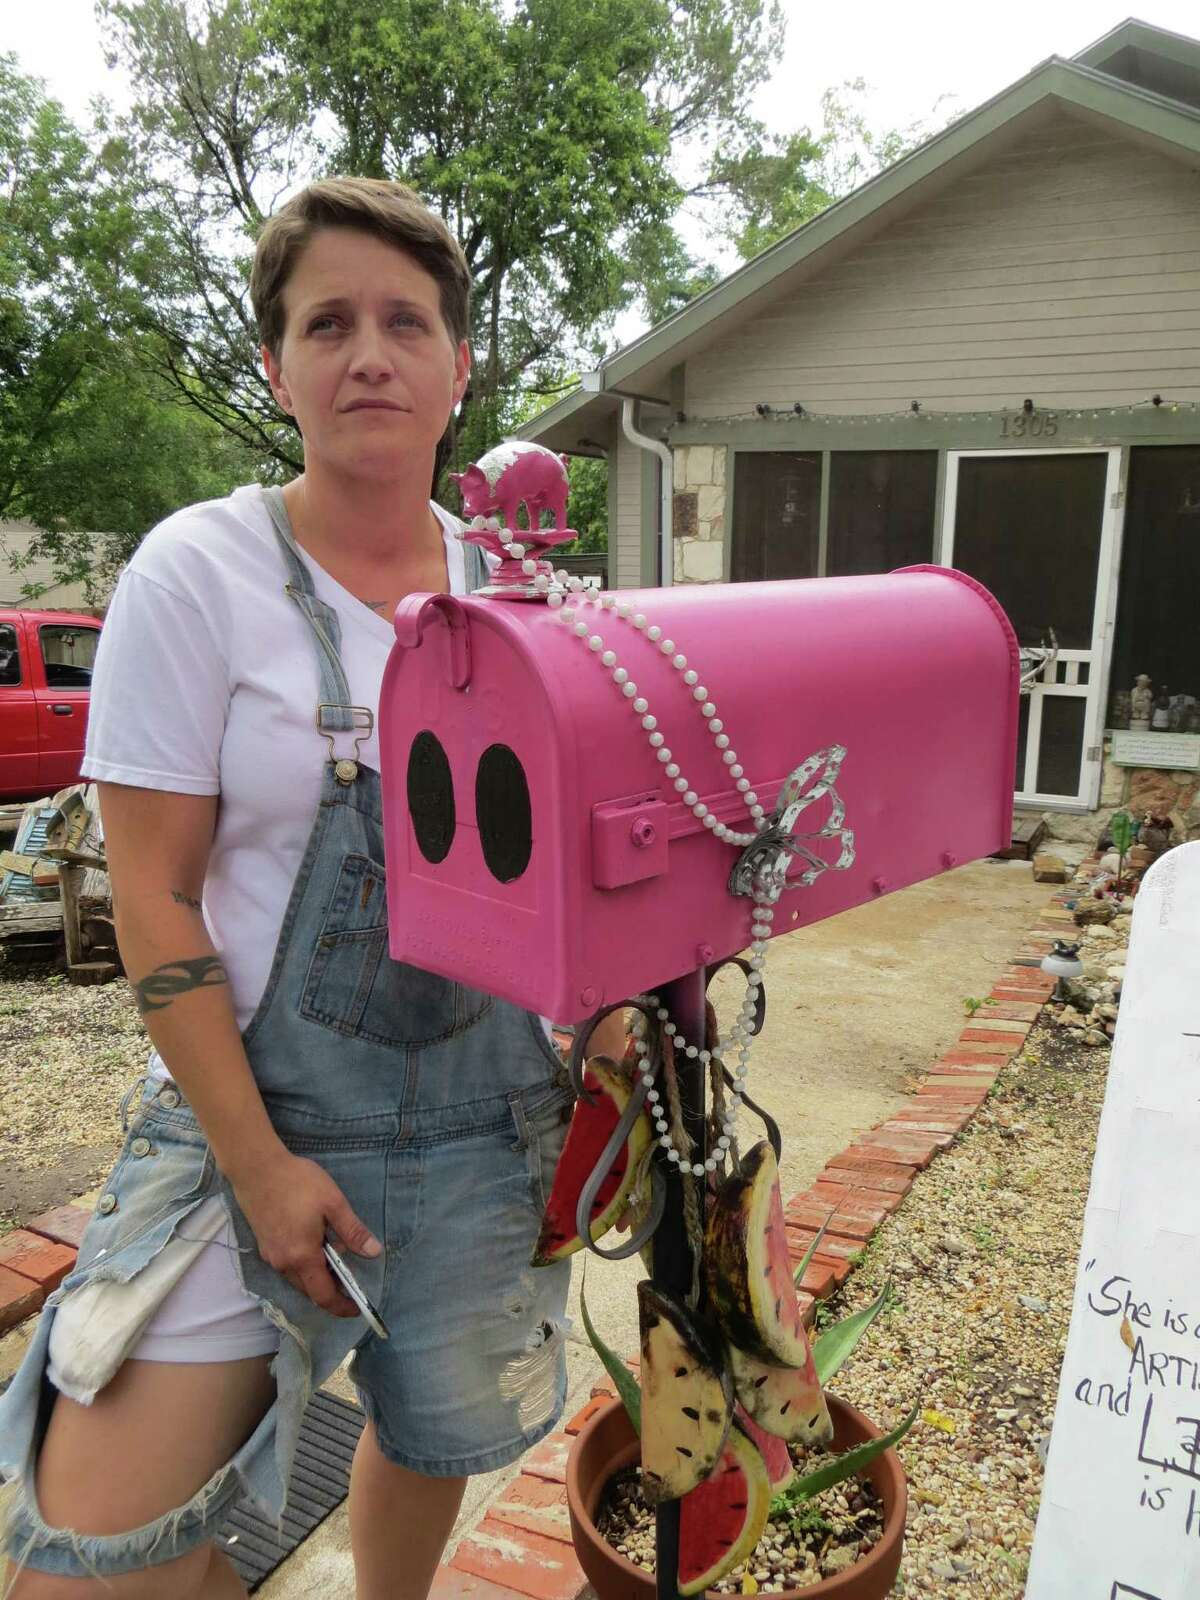 Renee Lofaso Massey said she's received donations and emotional support from other Kerrville citizens in what she casts as a fight to preserve her right to free expression. The city wants her to clean up the yard of her Allice Street home.